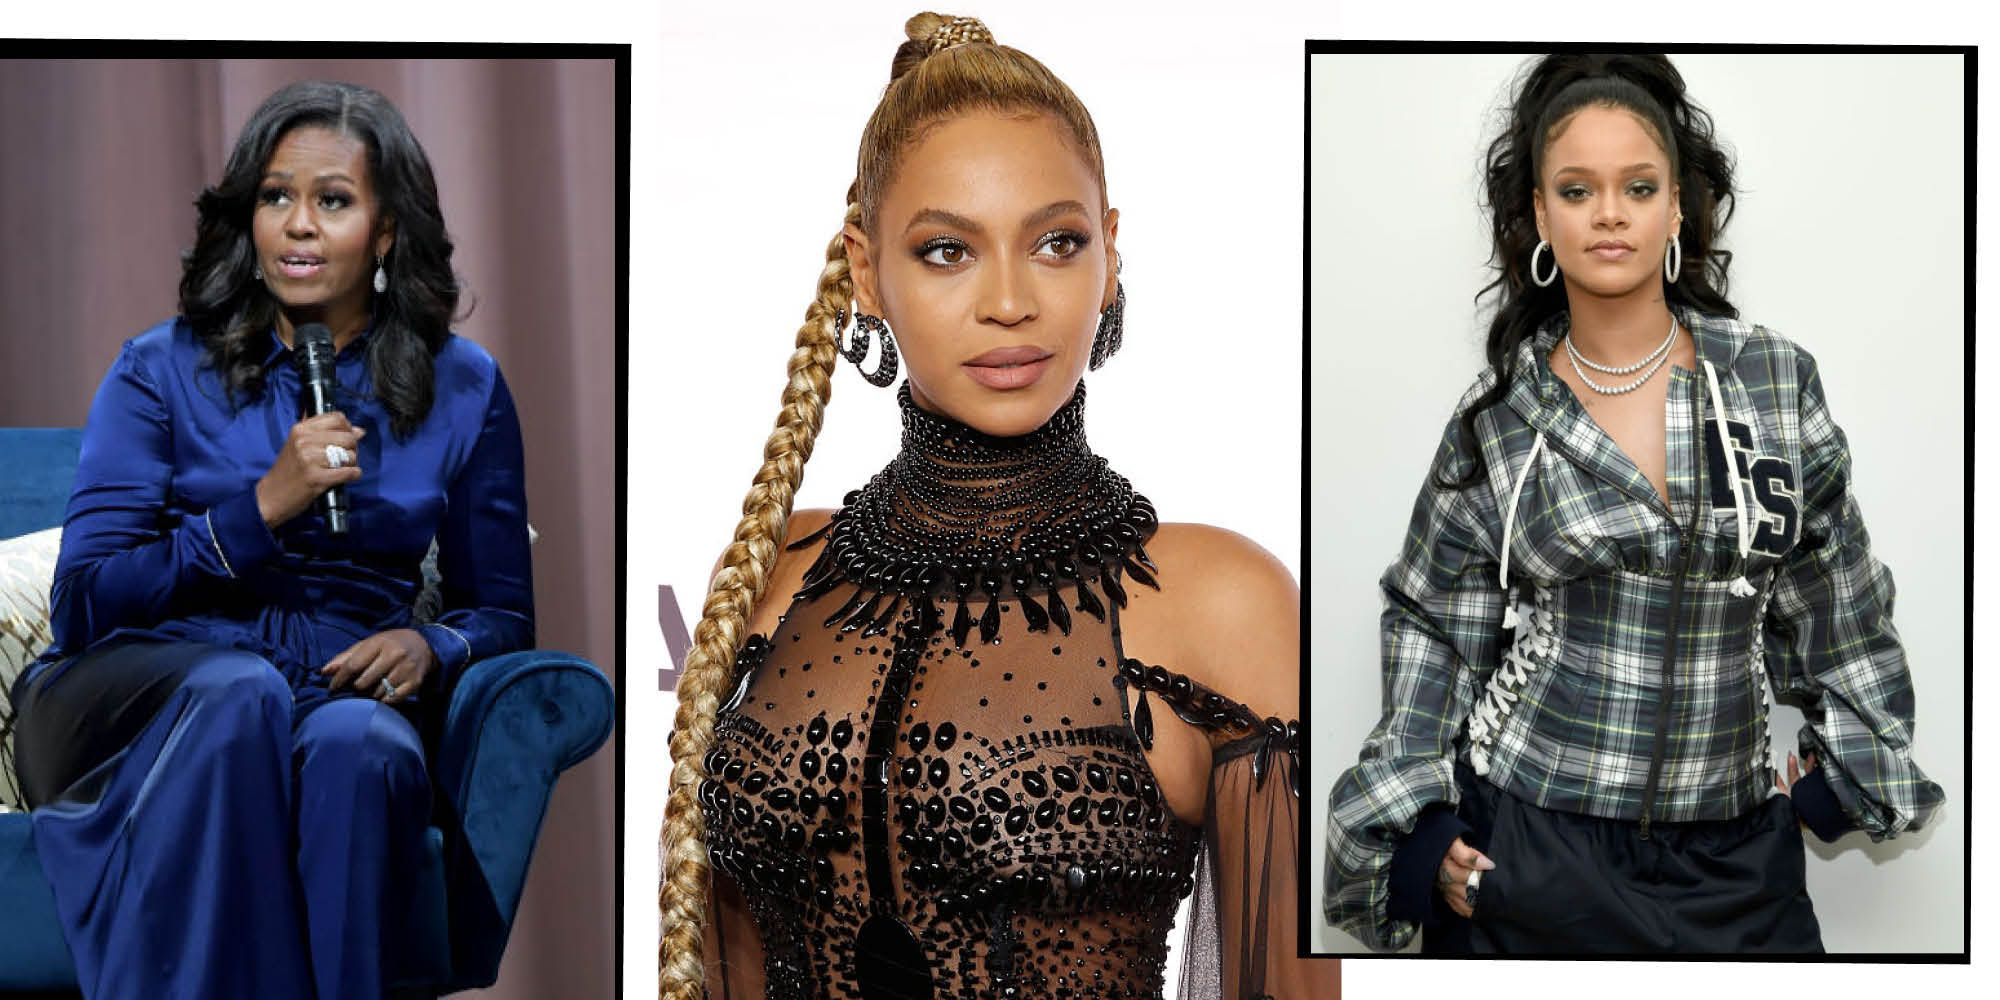 George Floyd: Beyoncé, Michelle Obama, Rihanna And More Pay Tribute And Call For Justice